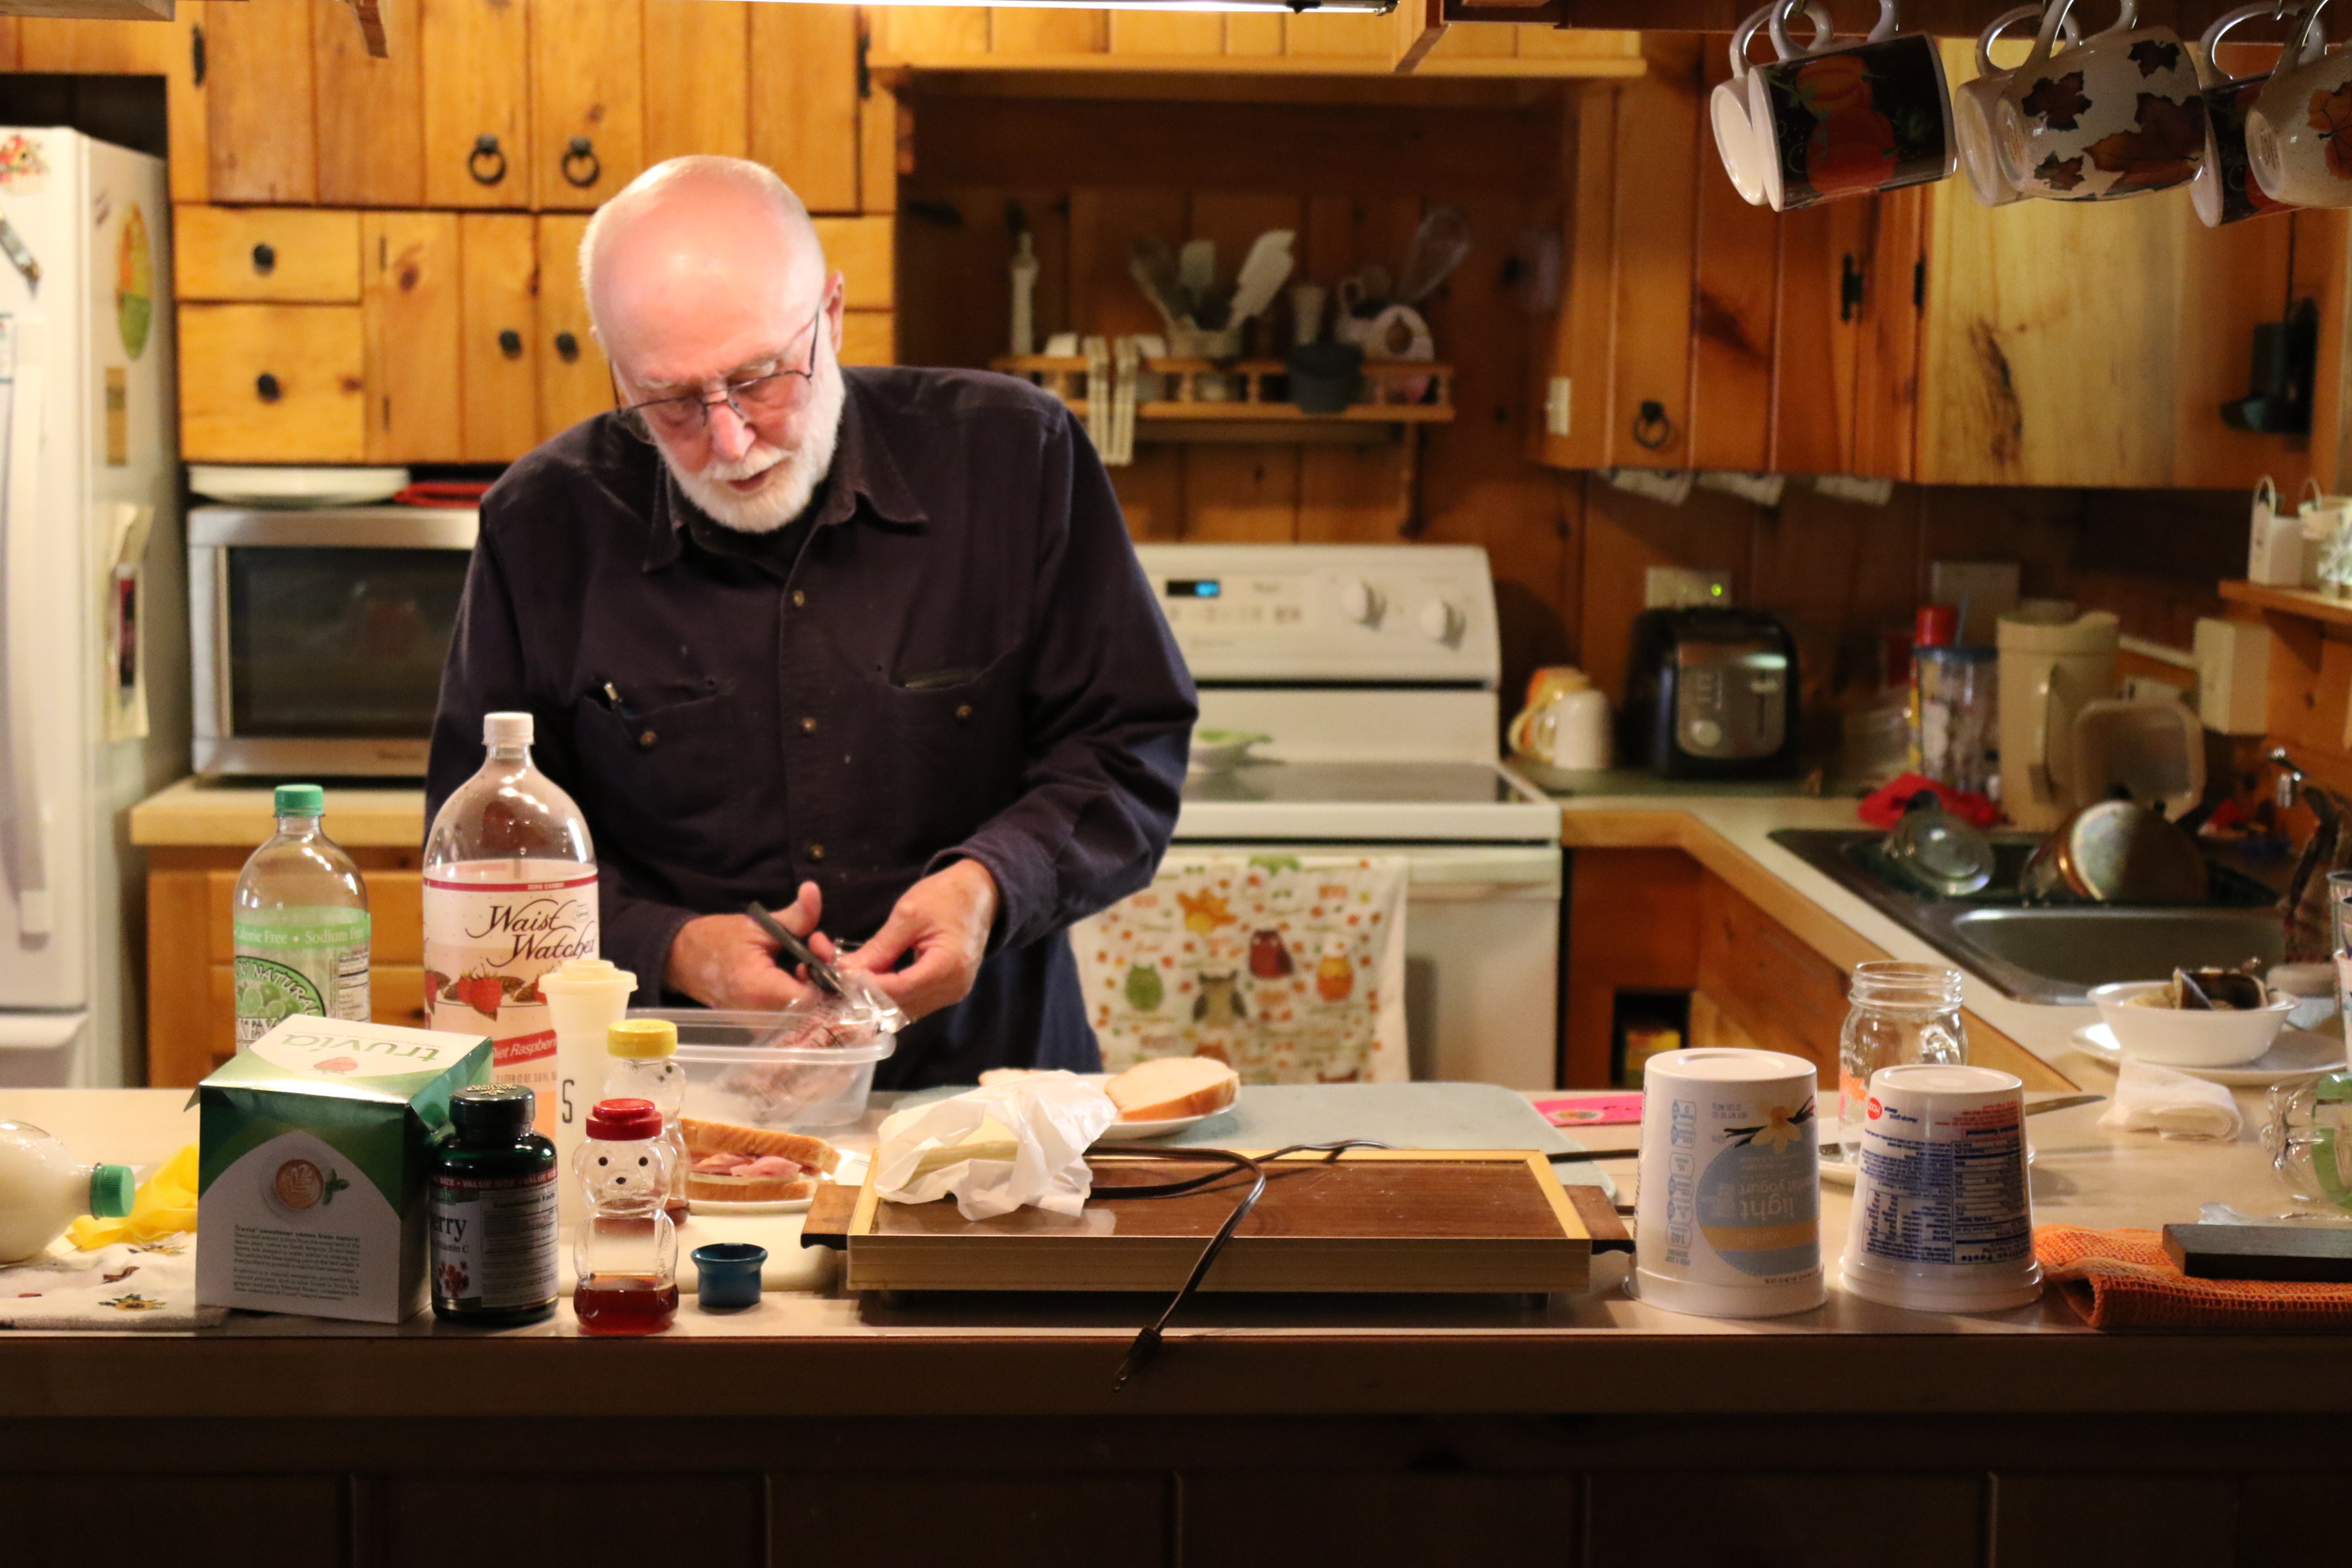 George prepares lunch for himself and Ann in his home in Mansfield, Connecticut. Since Ann's diagnosis, George has taken on nearly all of the household duties, including cooking. (Jackson Mitchell)